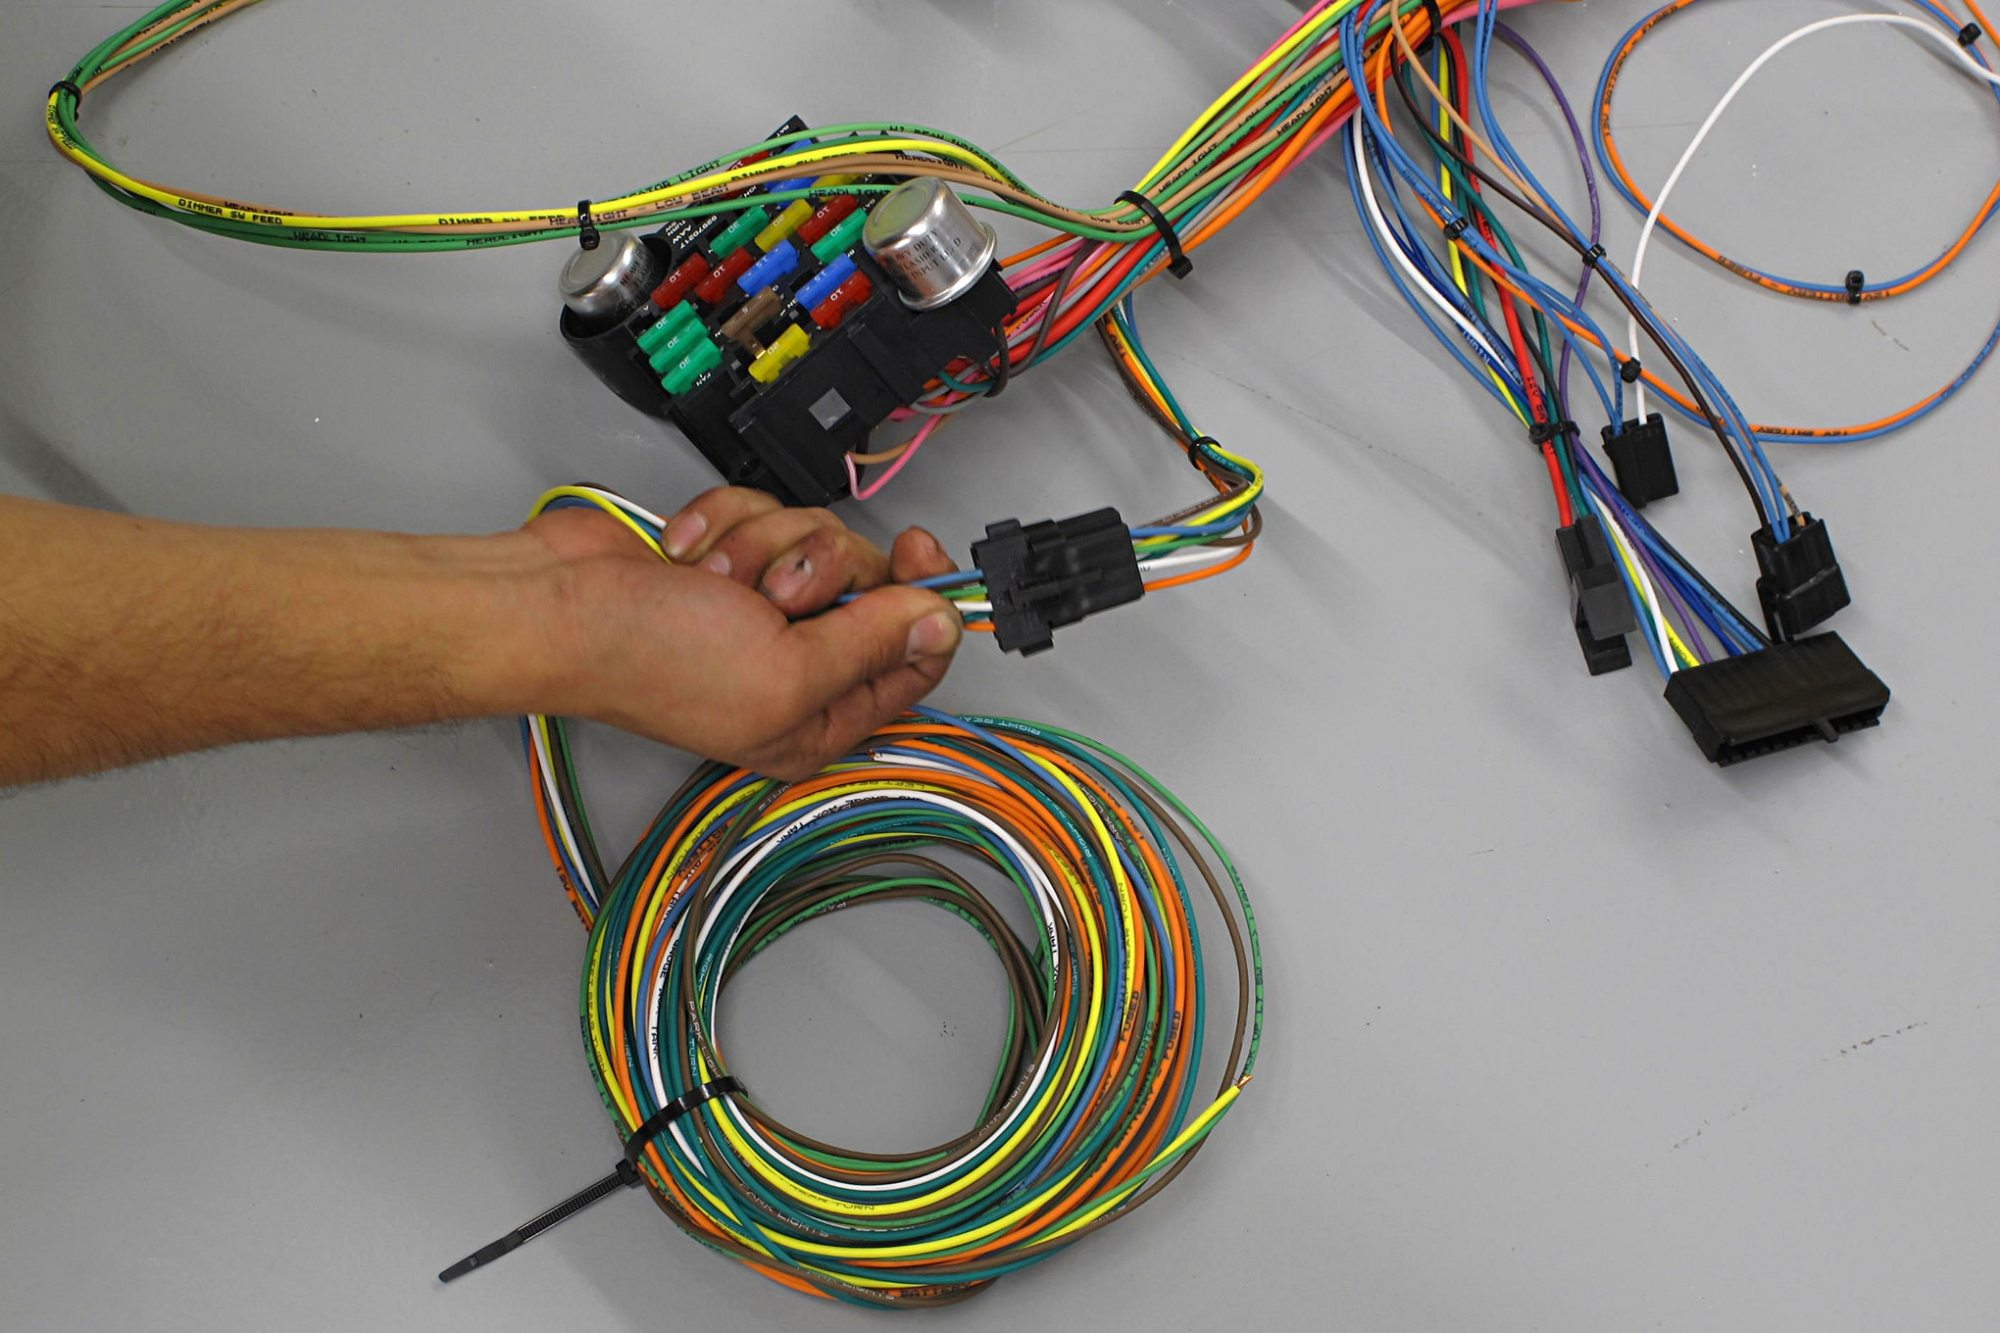 hight resolution of 014 wiring jpg